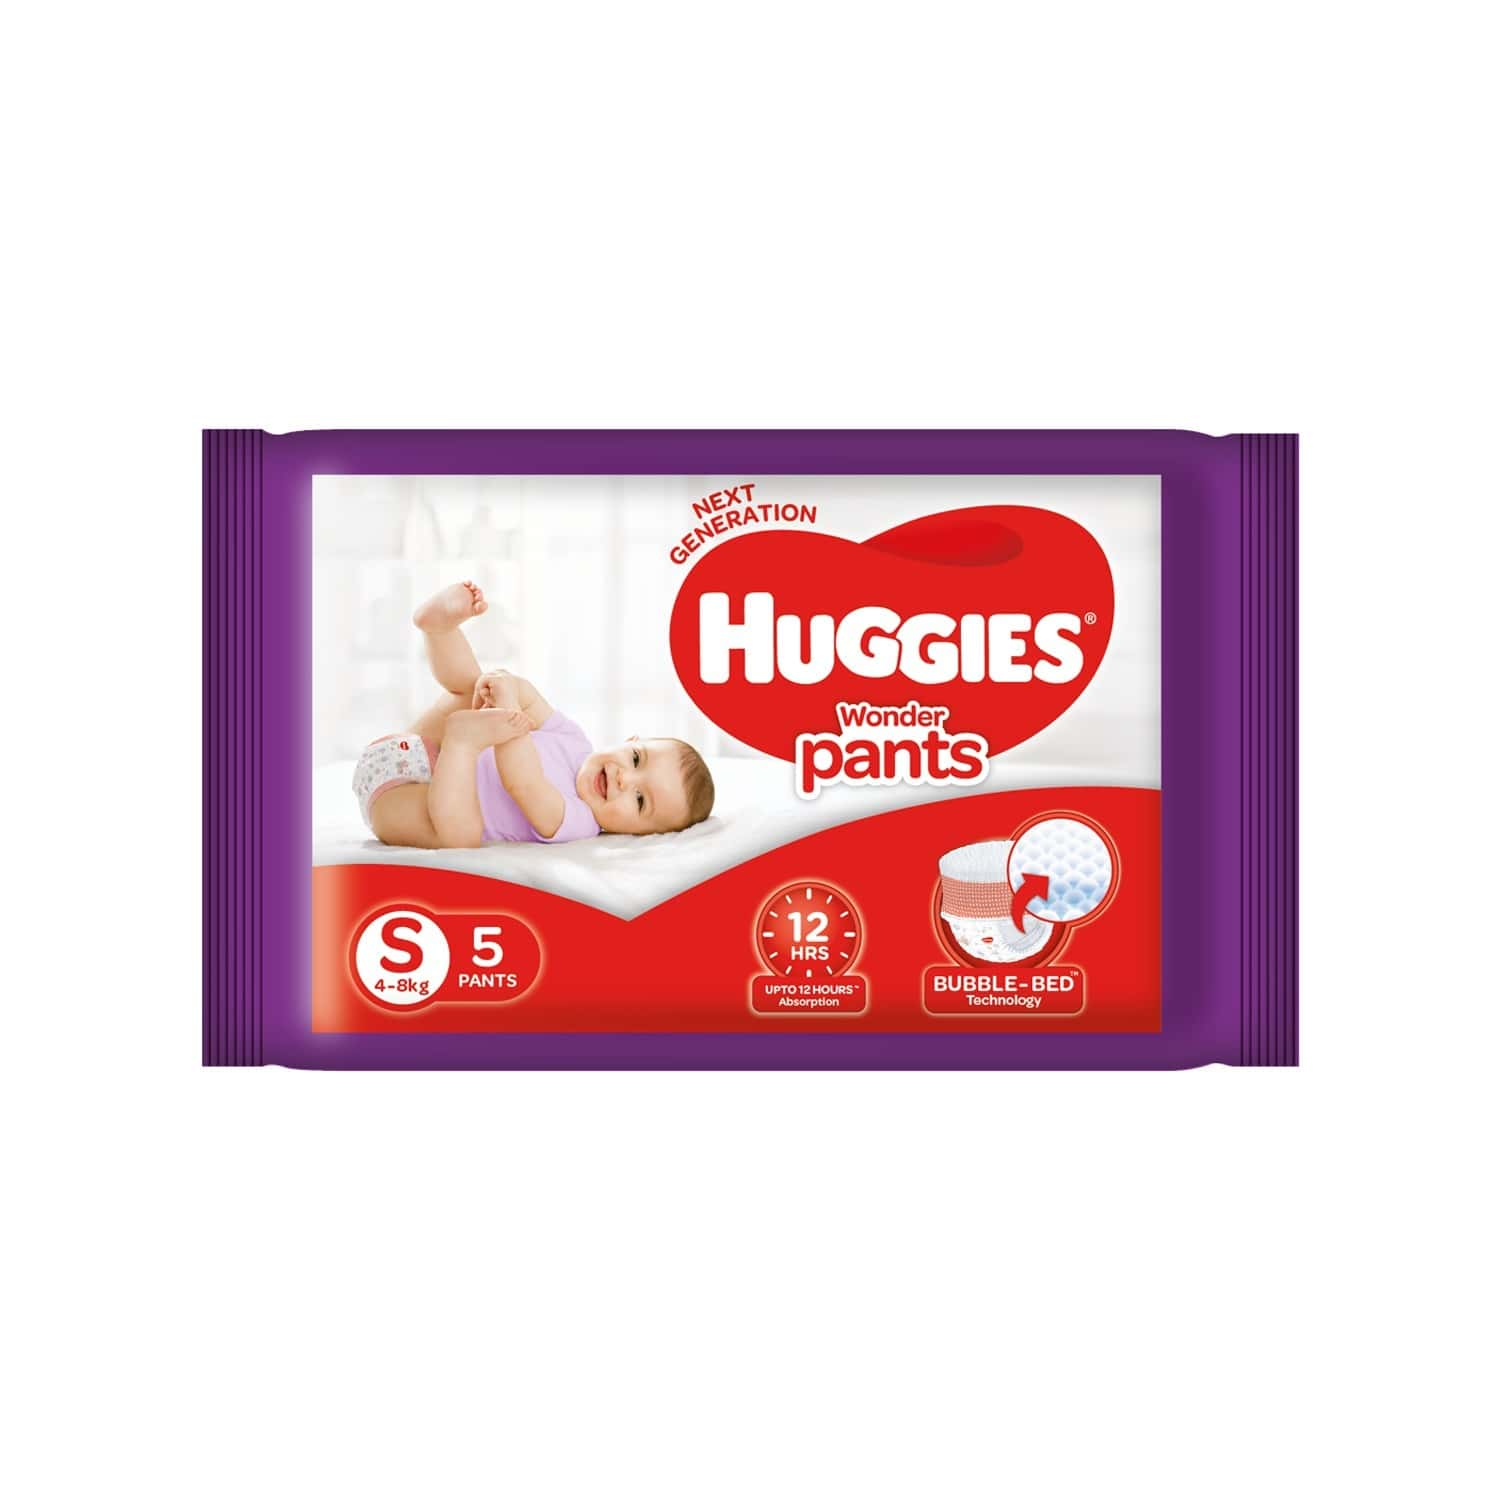 Huggies Wonder Pants Diapers, Small Size - 5 Count